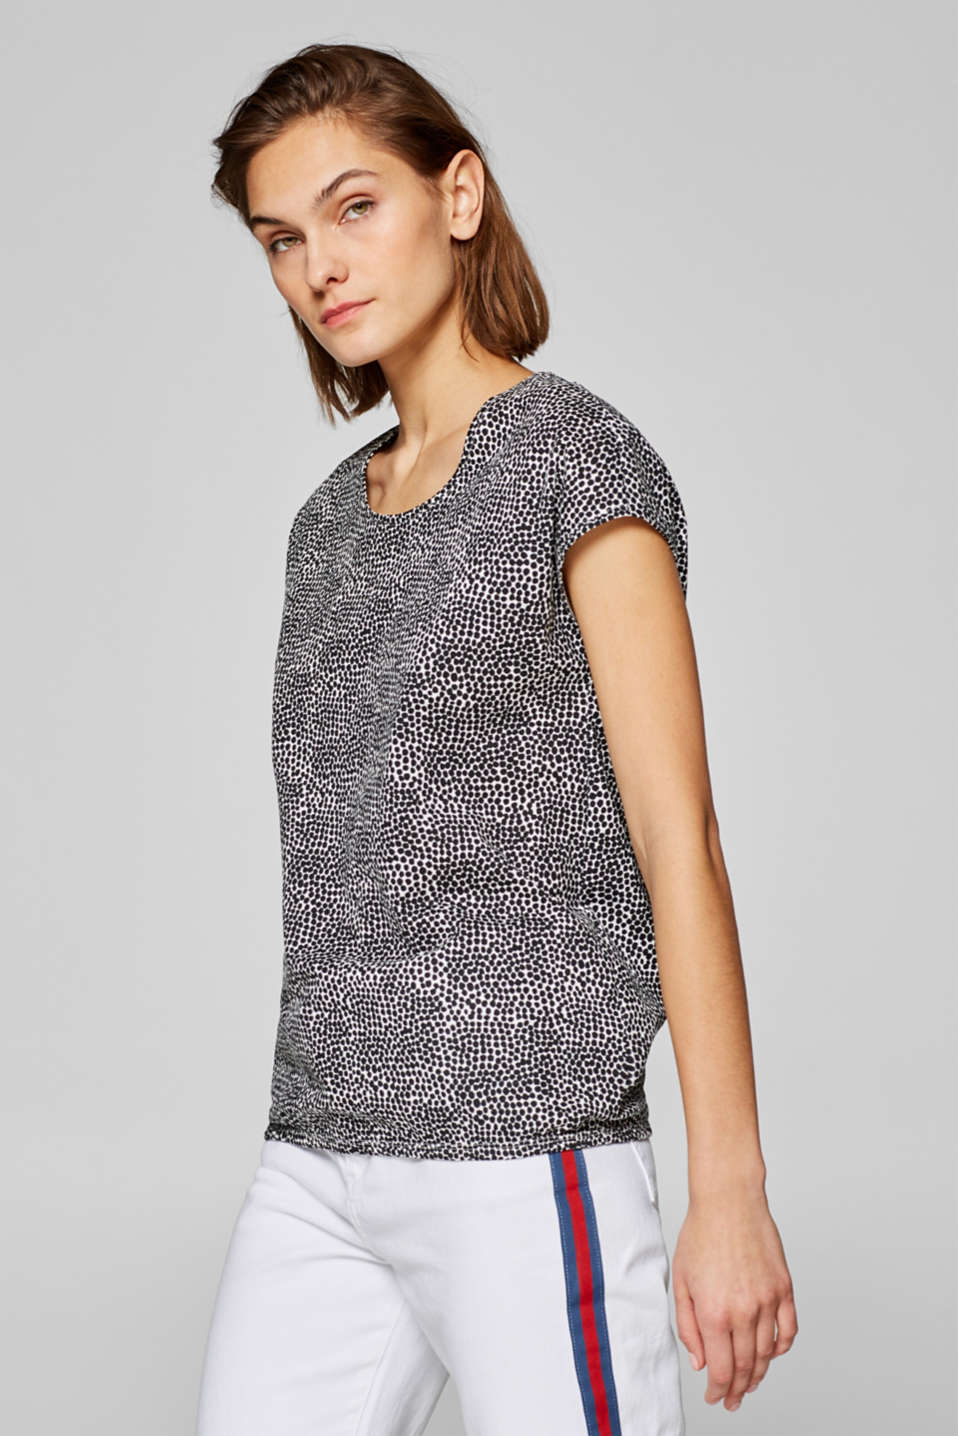 edc - Printed top with an elasticated waistband, 100% cotton